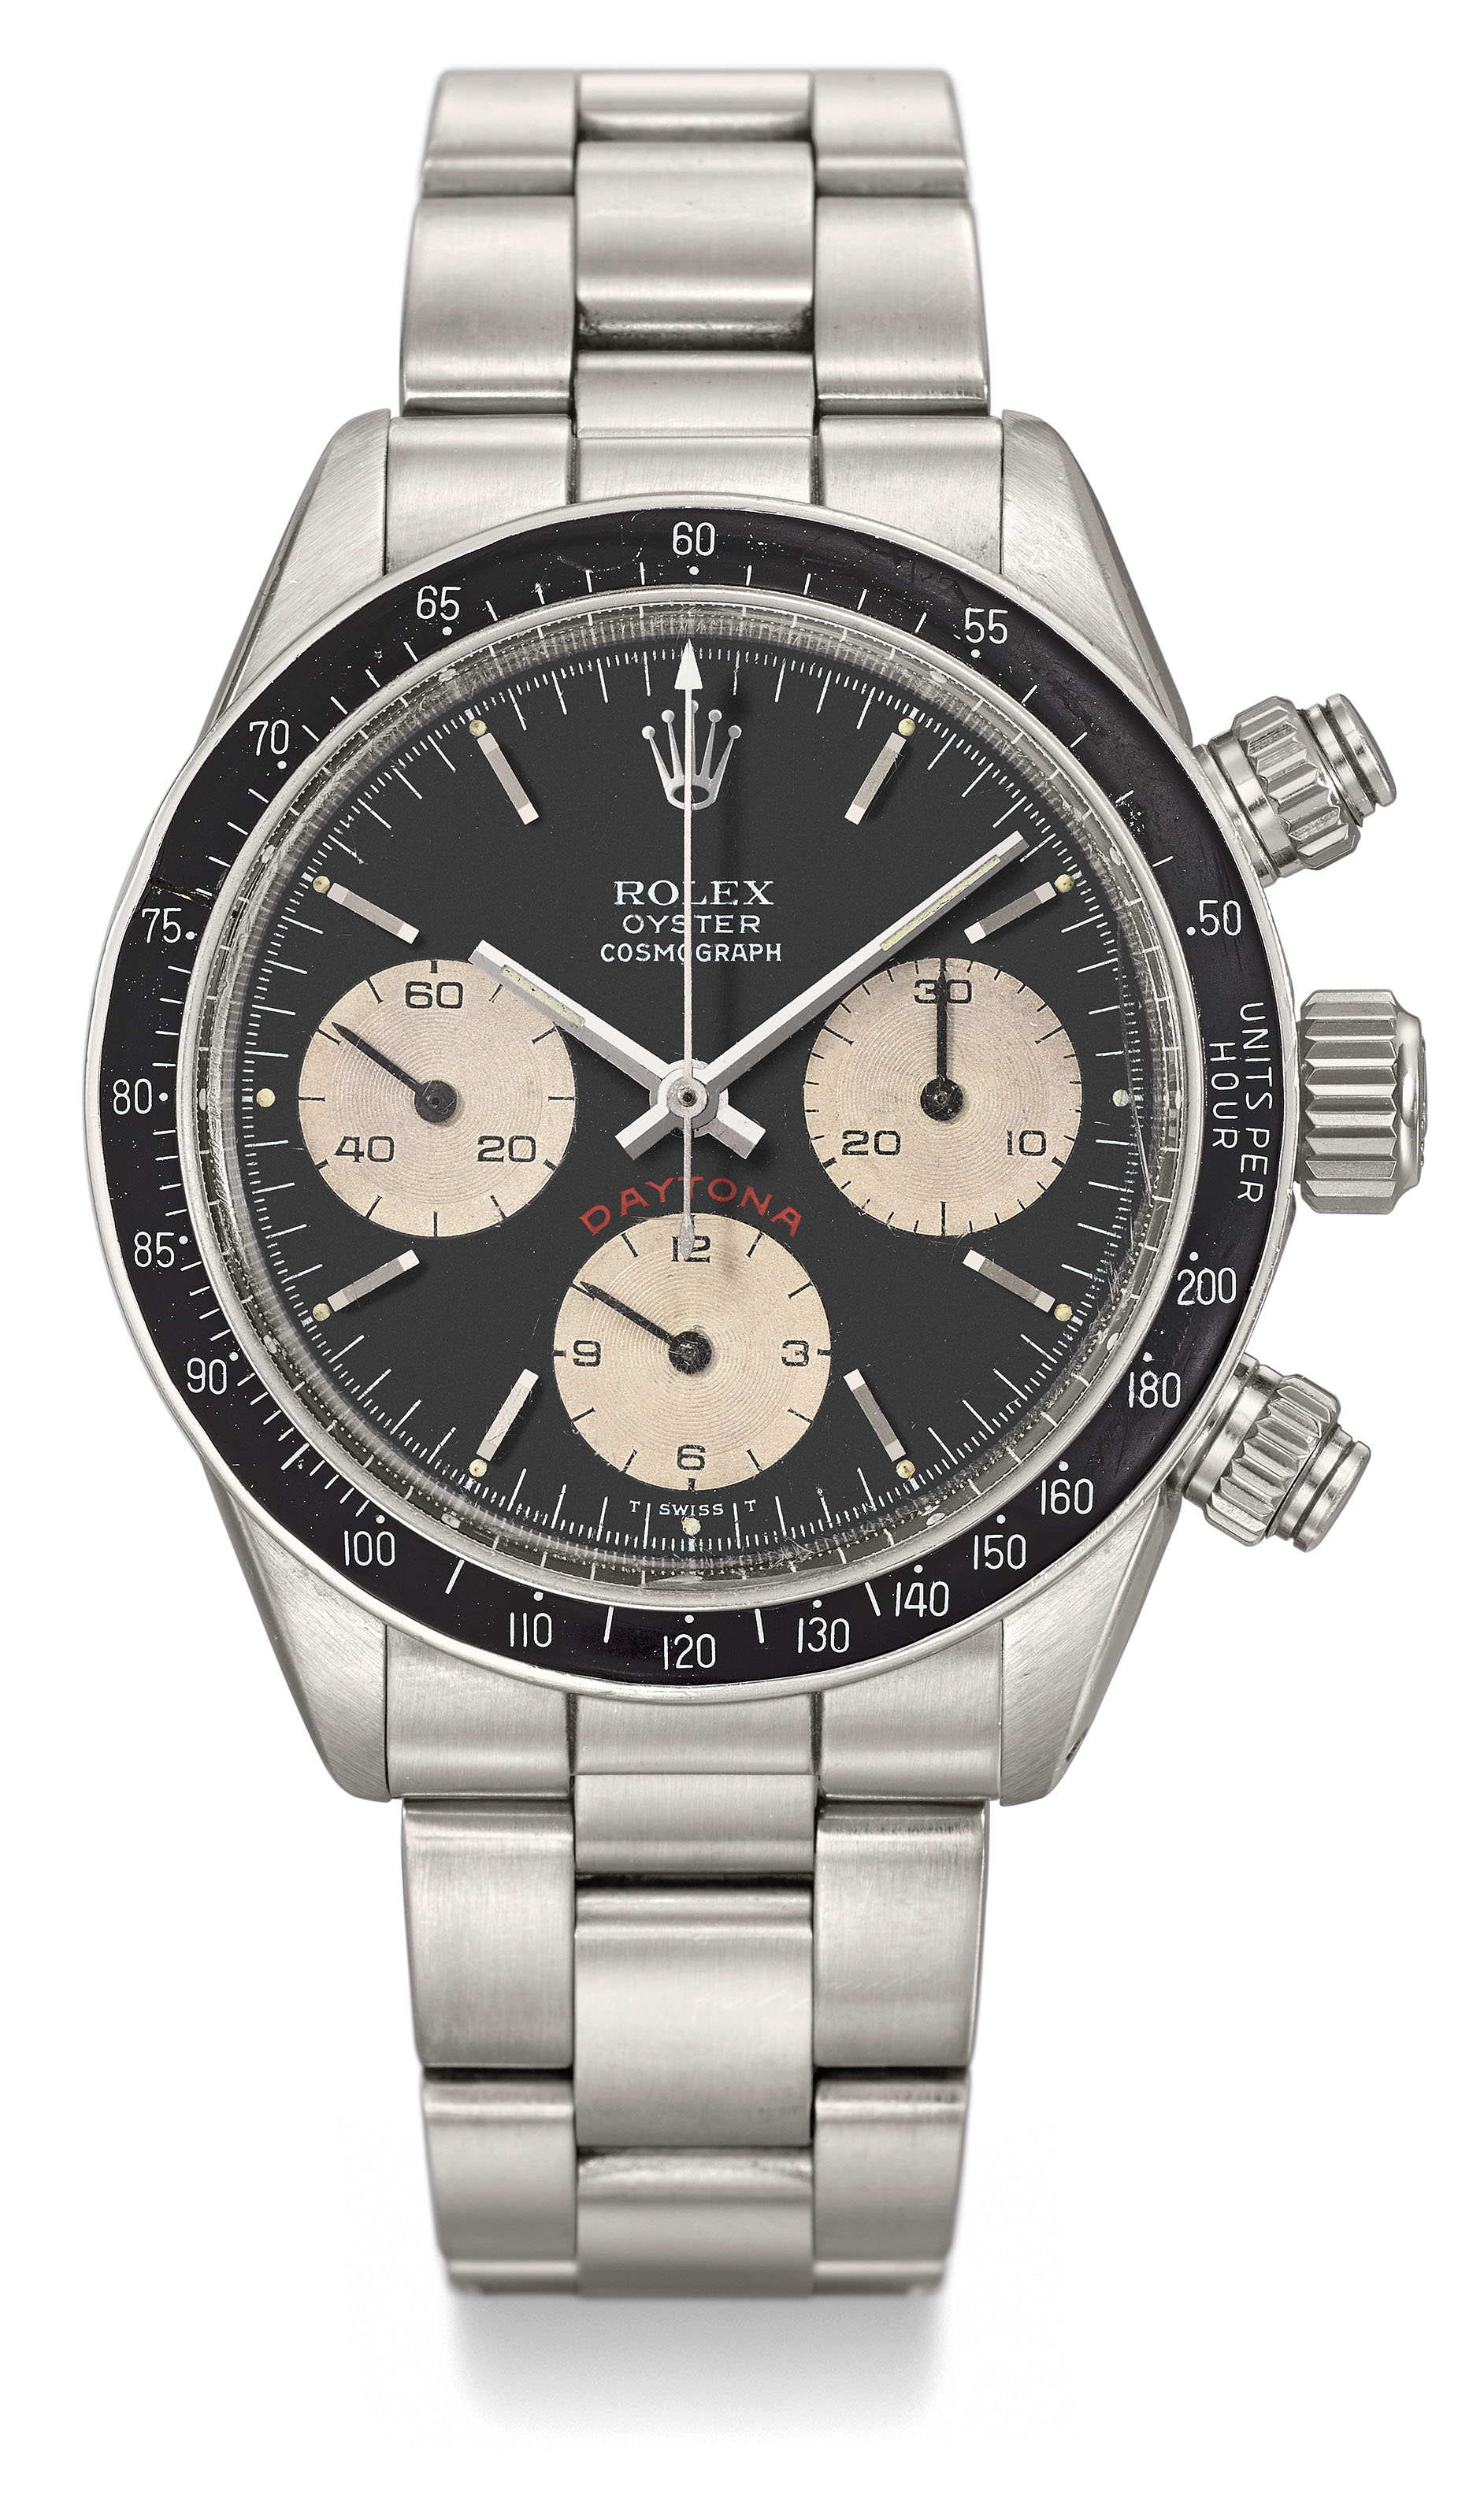 ROLEX. A VERY RARE AND ATTRACTIVE STAINLESS STEEL CHRONOGRAPH WRISTWATCH...